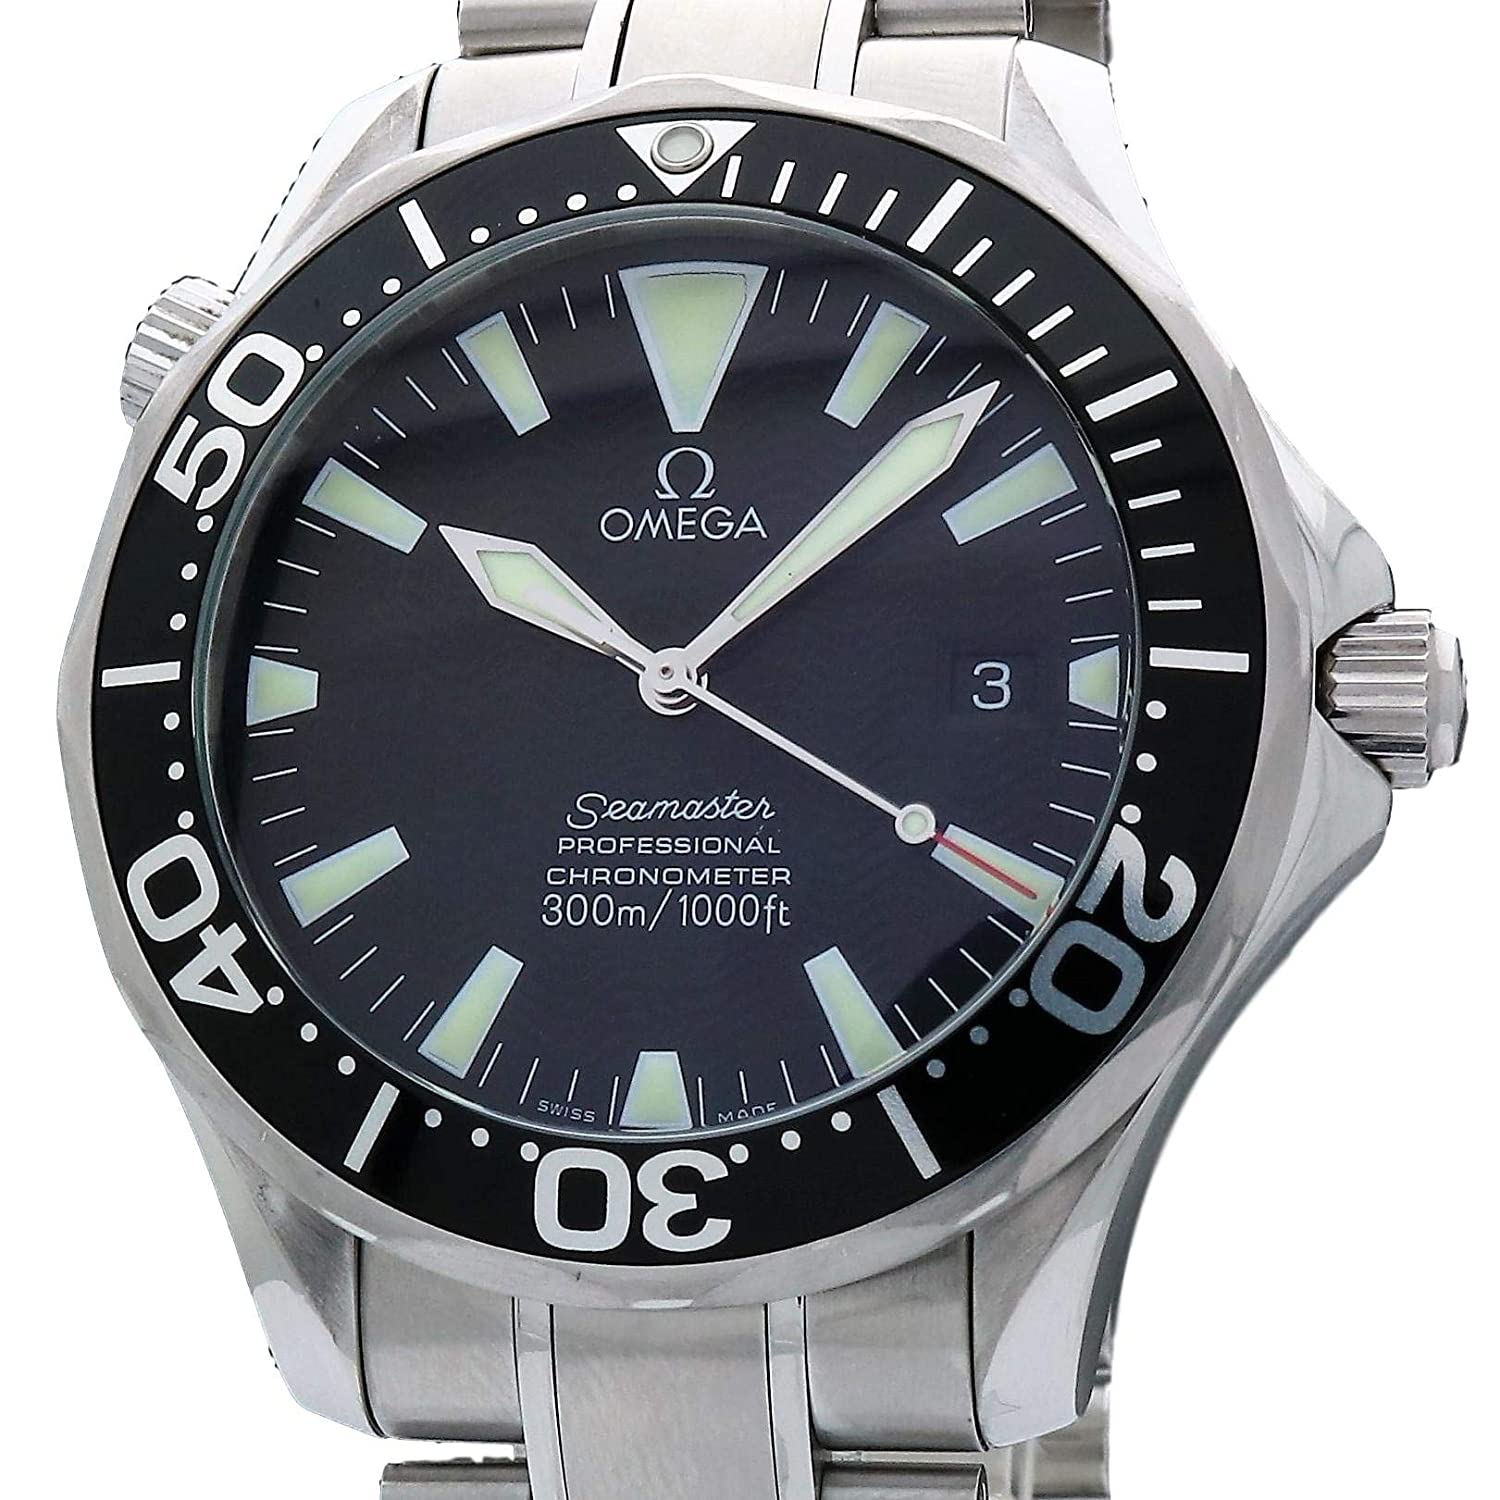 6d8257b00cfc4 Amazon.com  Omega Seamaster Swiss-Automatic Male Watch 2254.50.00  (Certified Pre-Owned)  Omega  Watches